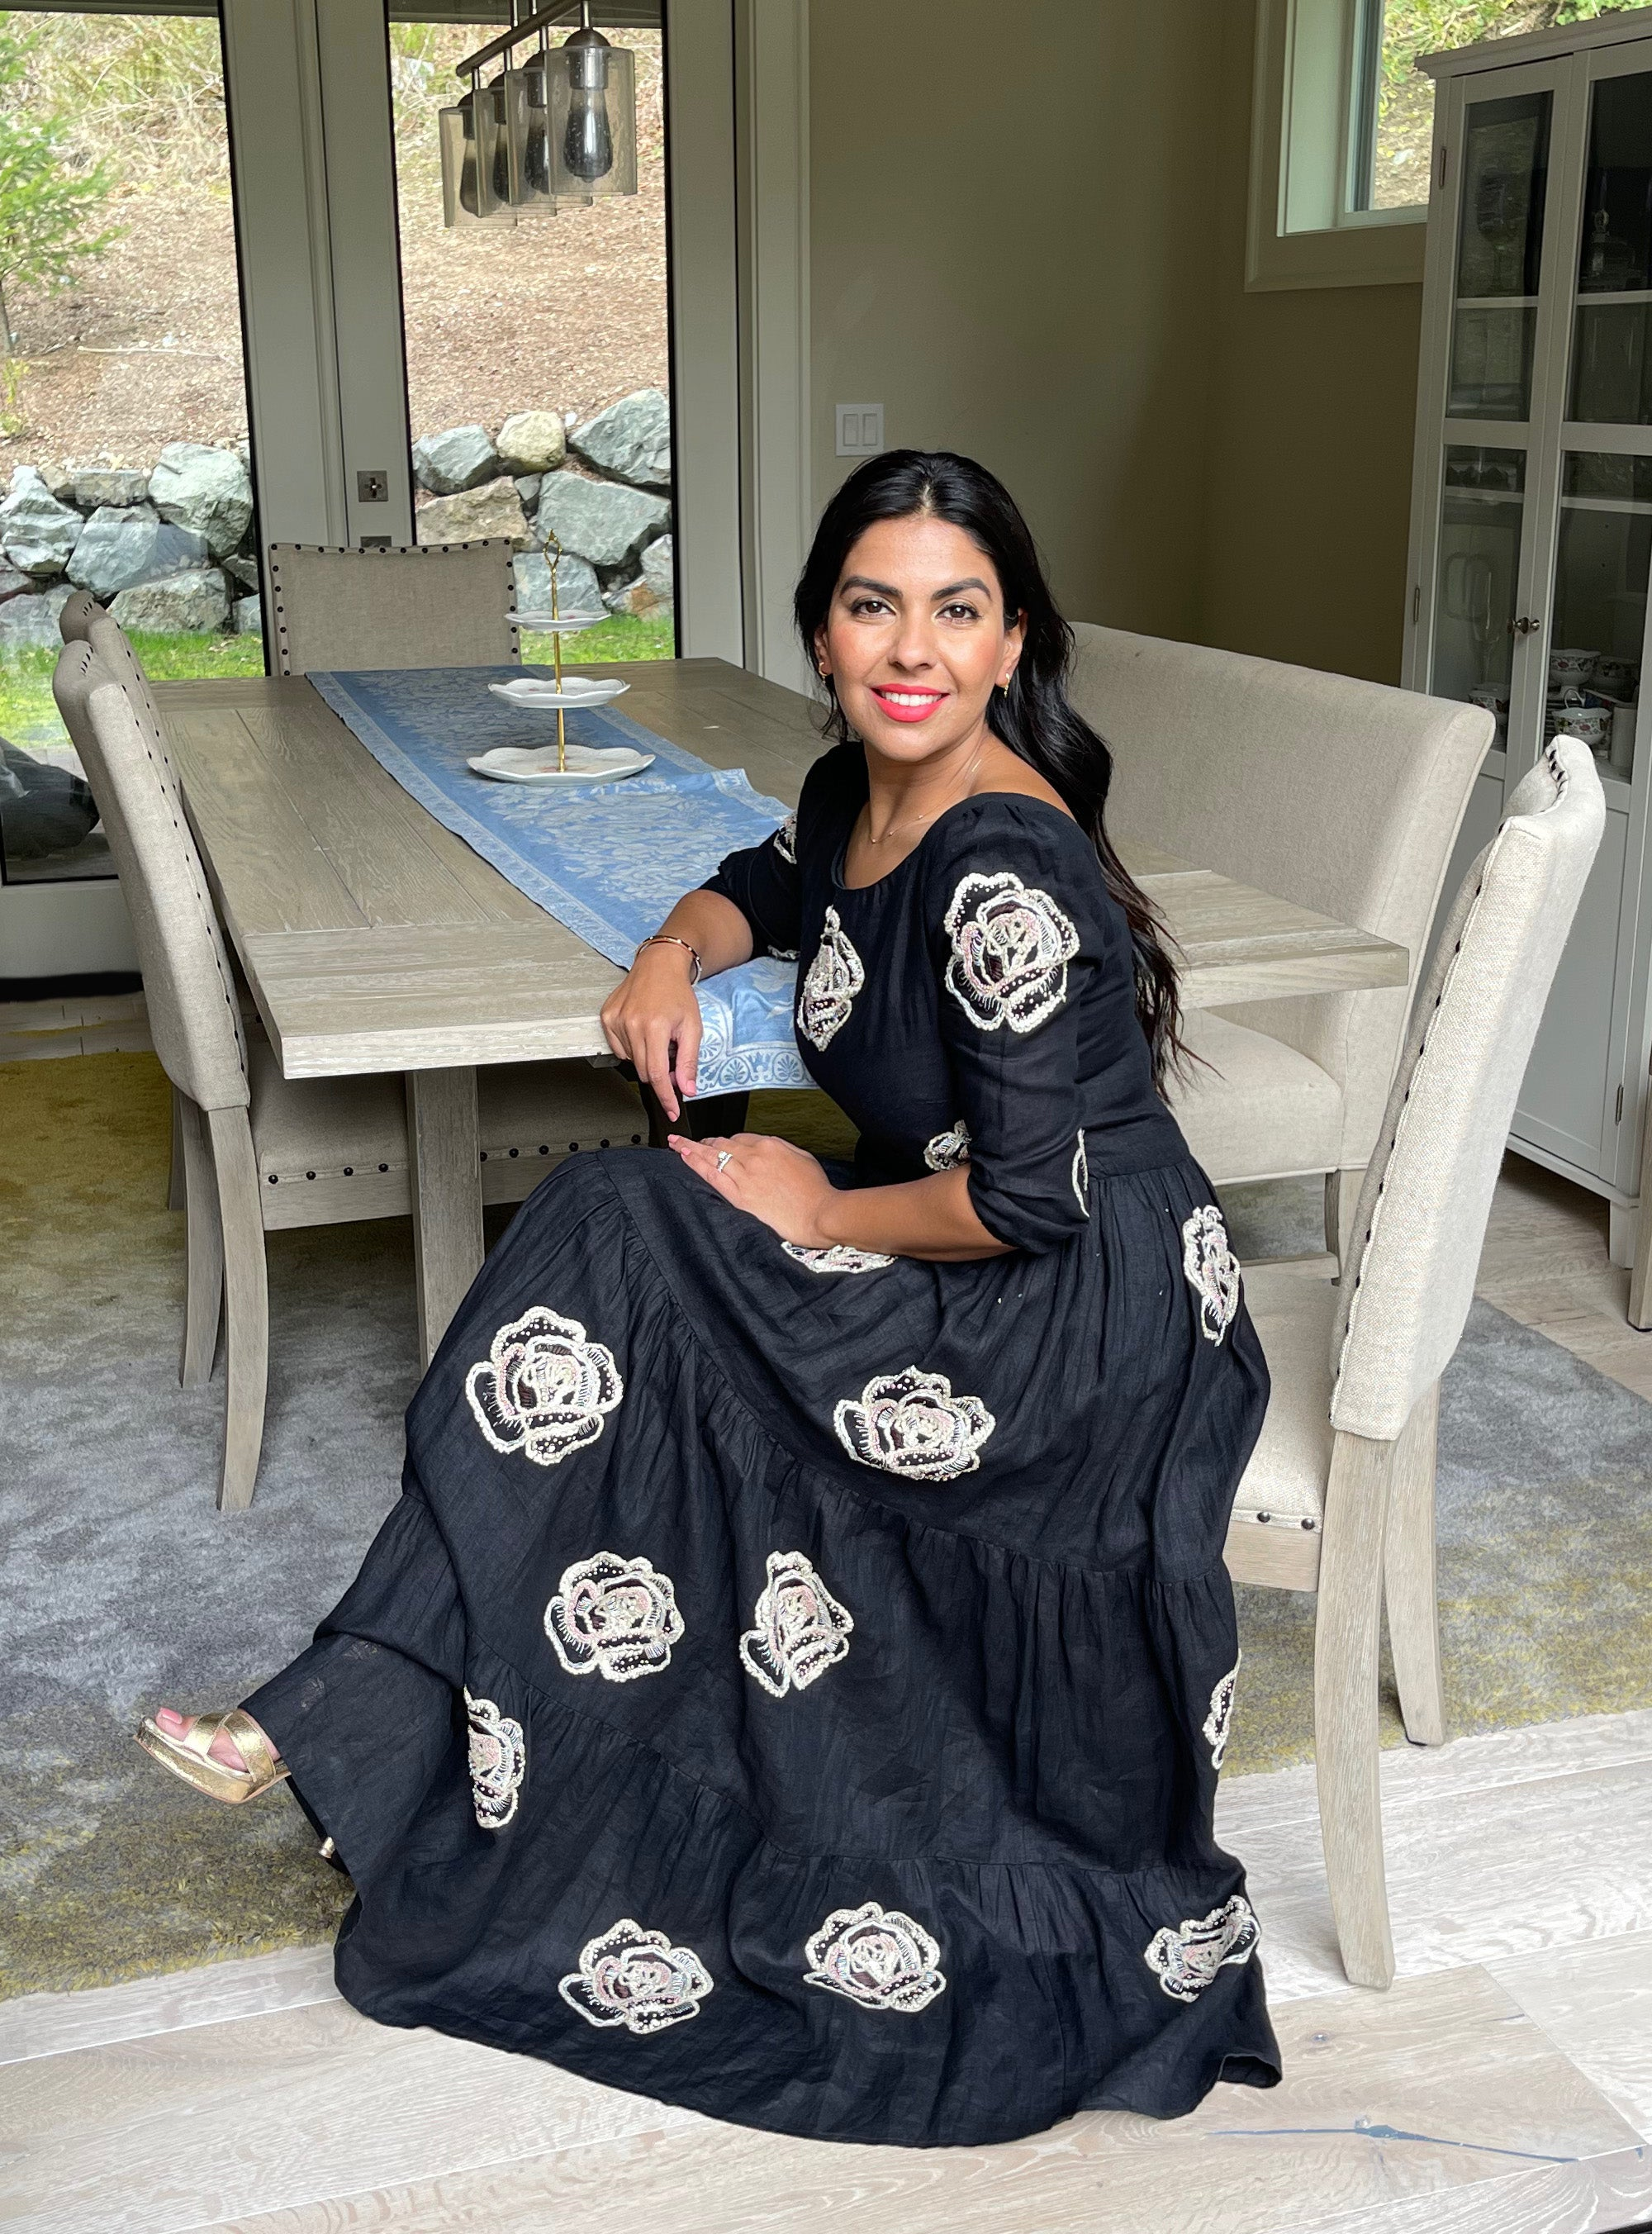 Woman wearing black linen dress with hand embroidery and pockets